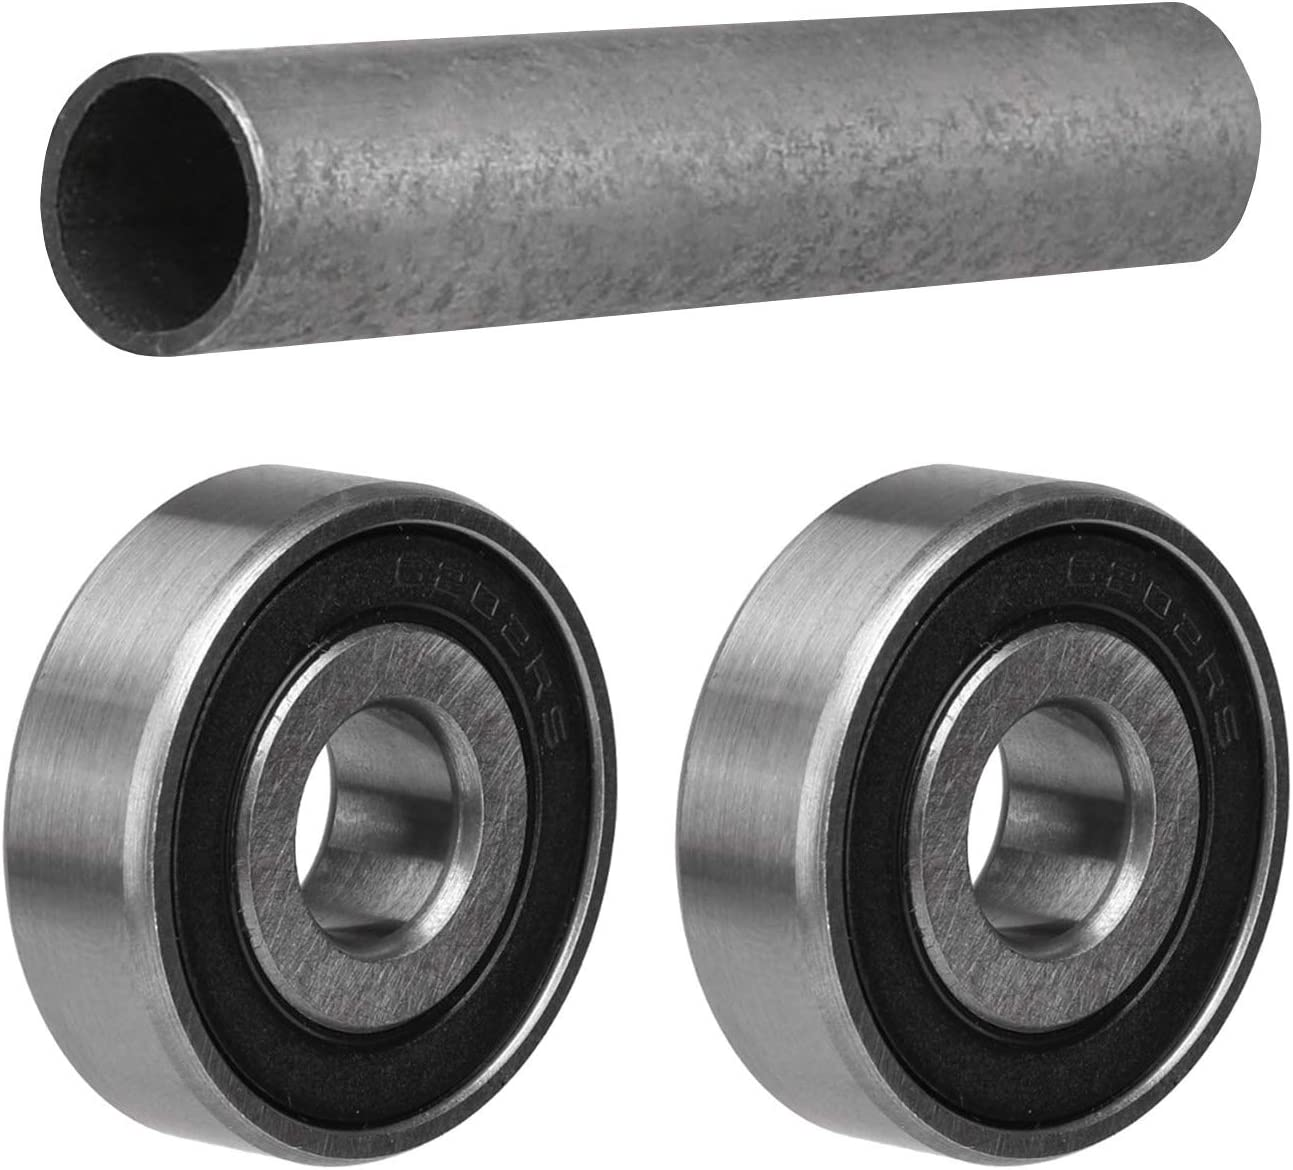 TDPRO Pair 6202 RS Ball Bearings with Front Spacers Bushes Sleeves for 15mm to 12mm Dirt Pit Bike Wheel Axle Front Spacer